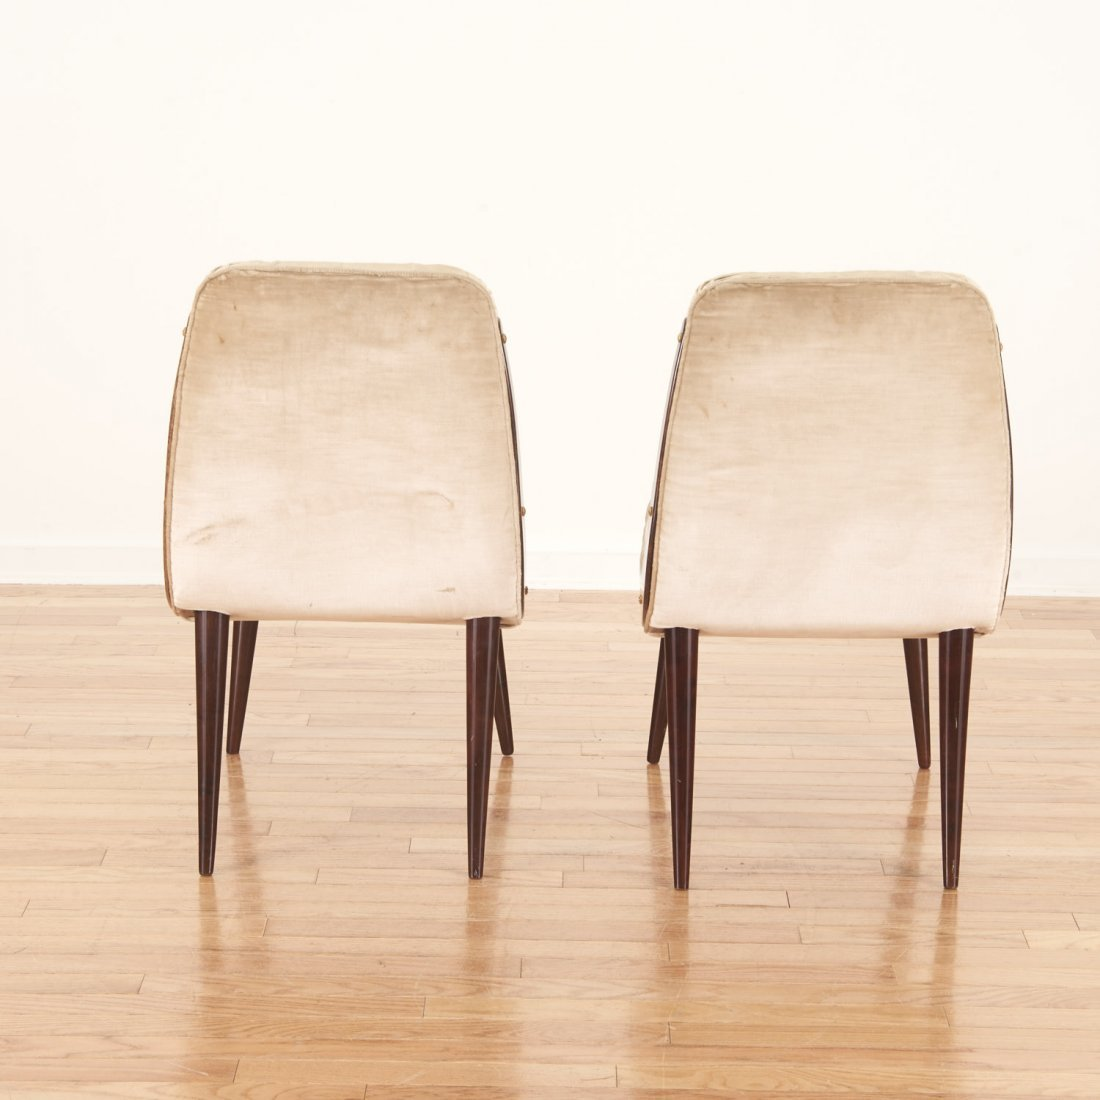 Pair Aldo Tura button tufted velvet dining chairs - 6